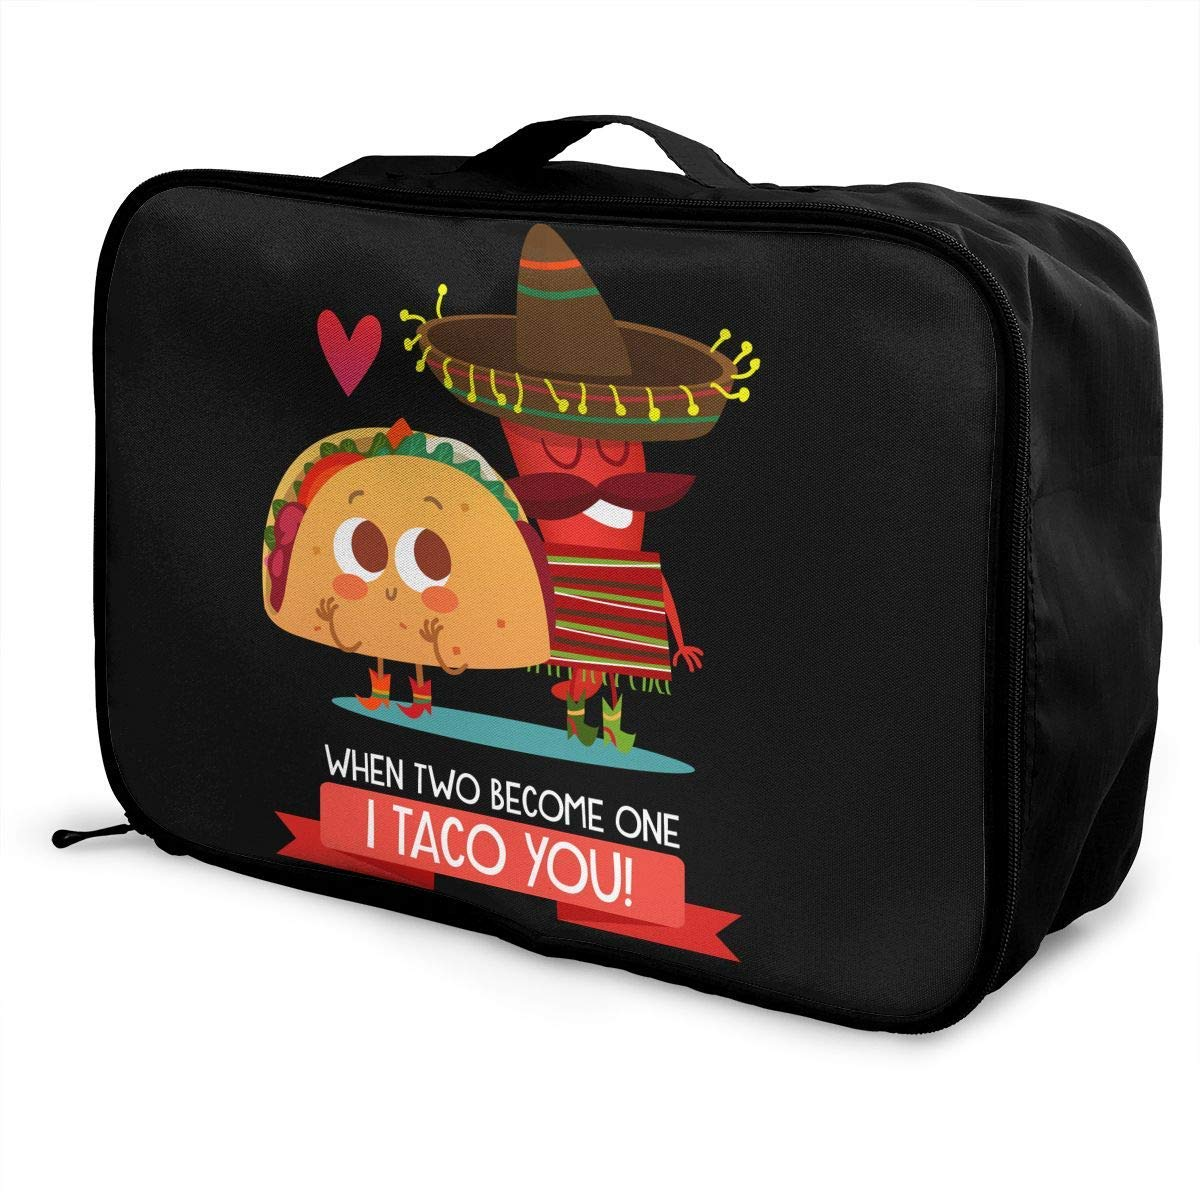 Portable Luggage Duffel Bag Funny Taco Travel Bags Carry-on In Trolley Handle